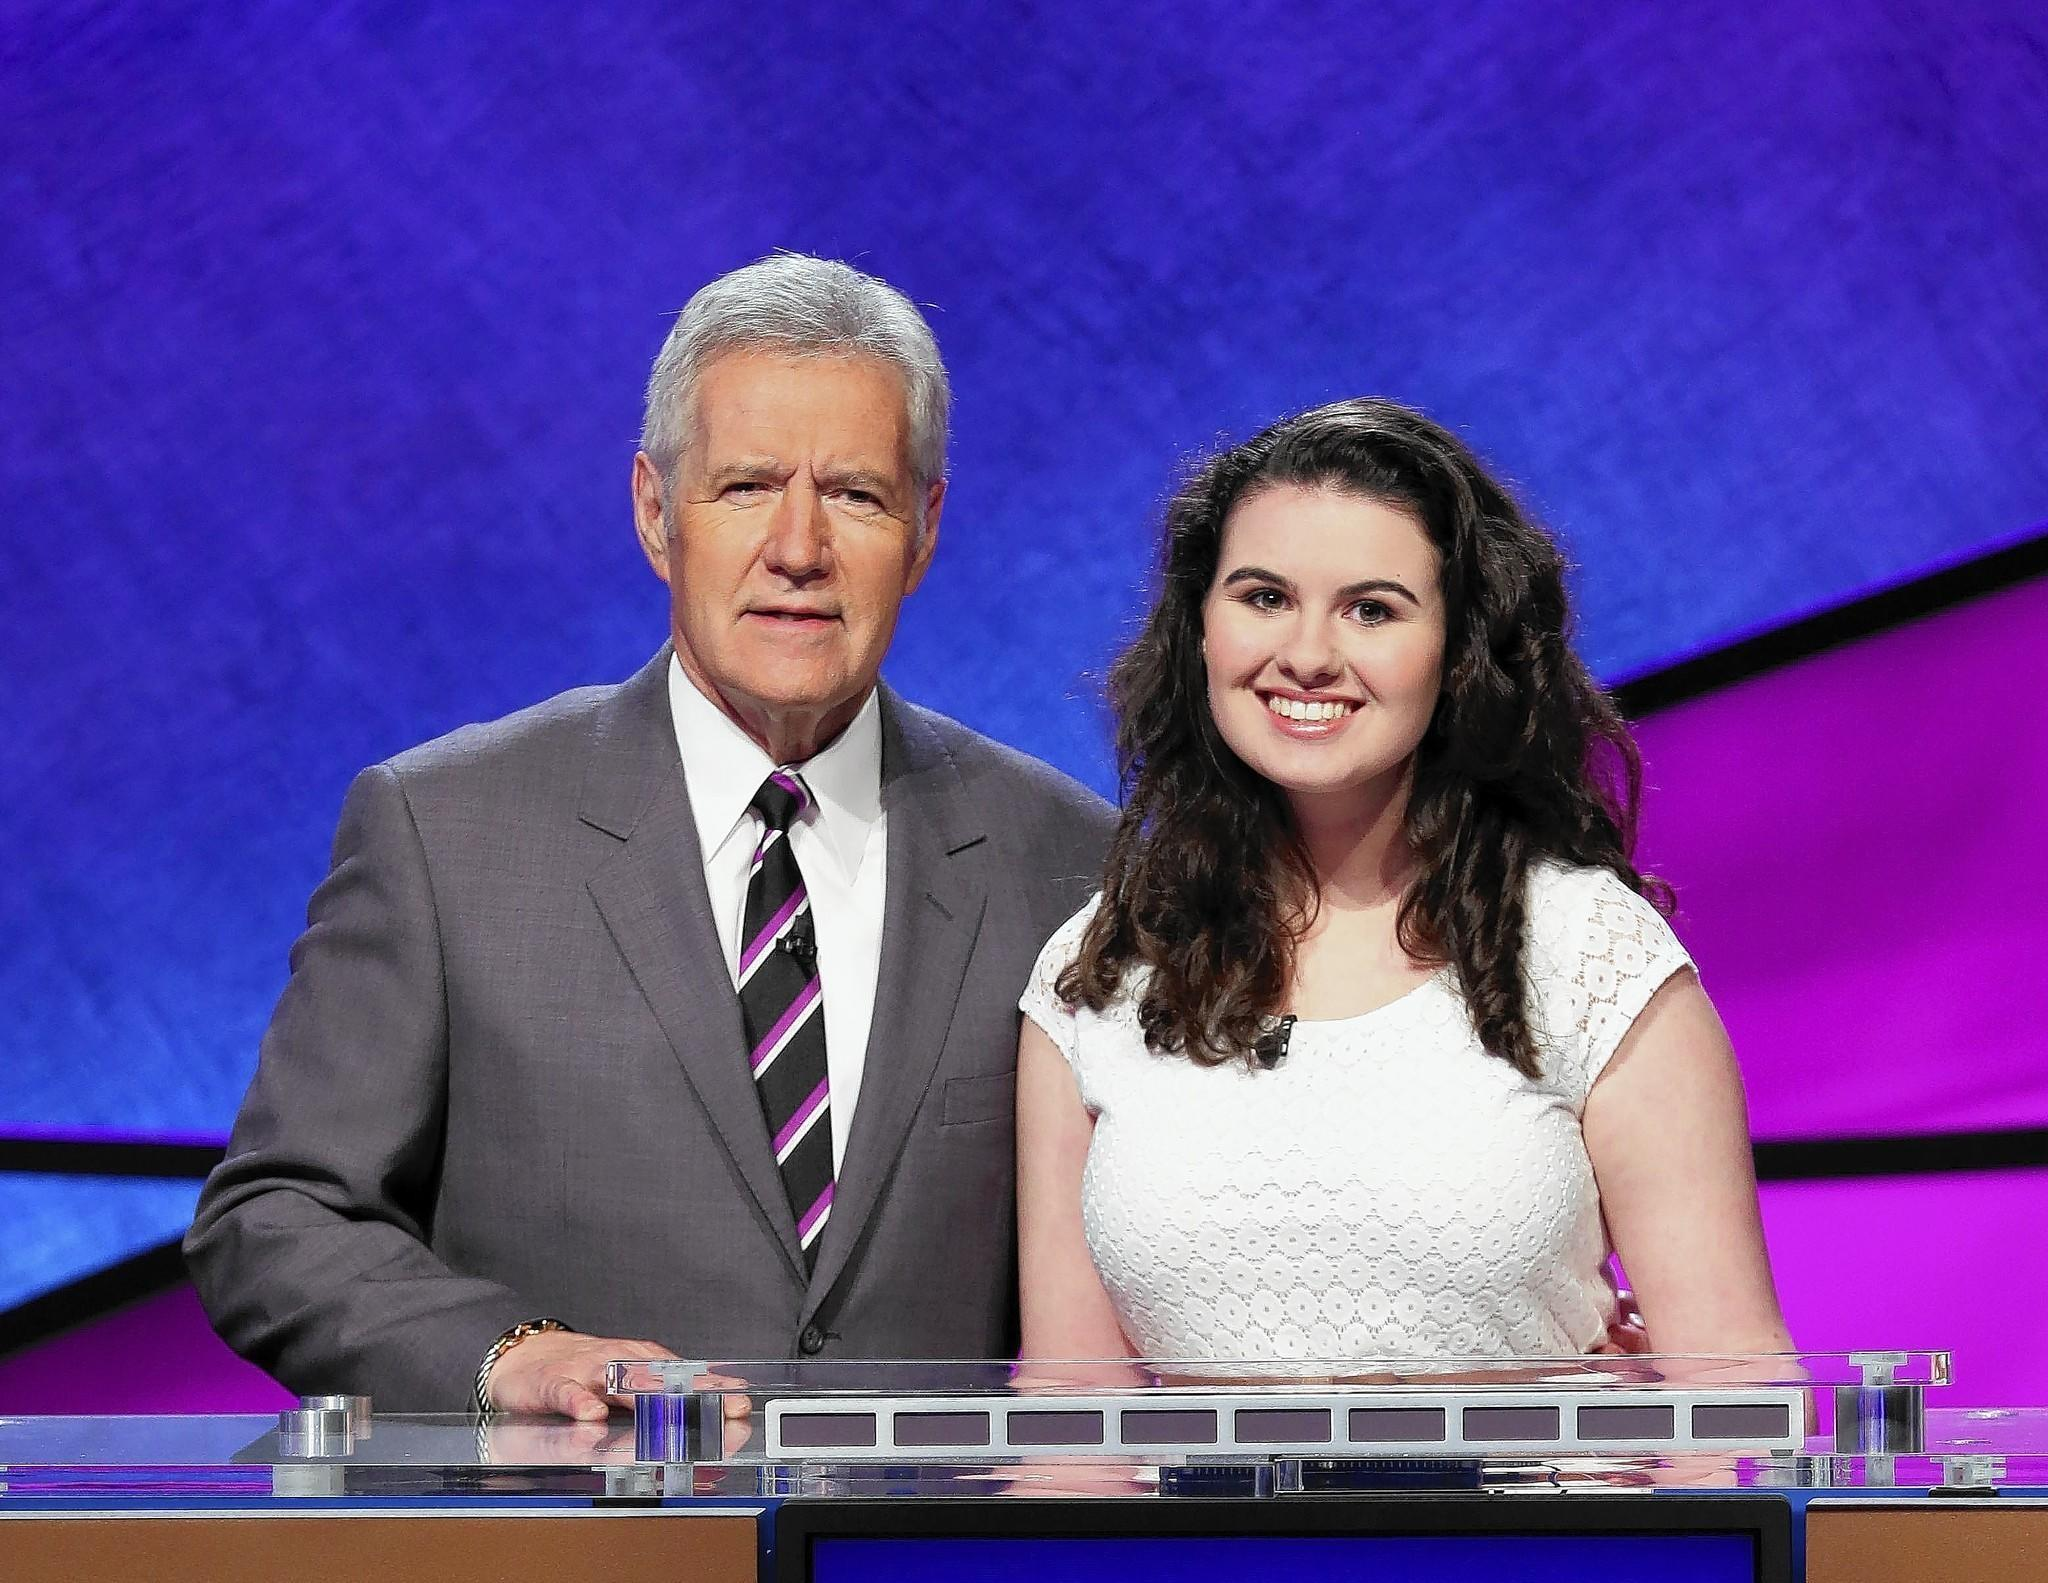 Selena Groh, with host Alex Trebek, will compete on Jeopardy on July 22.